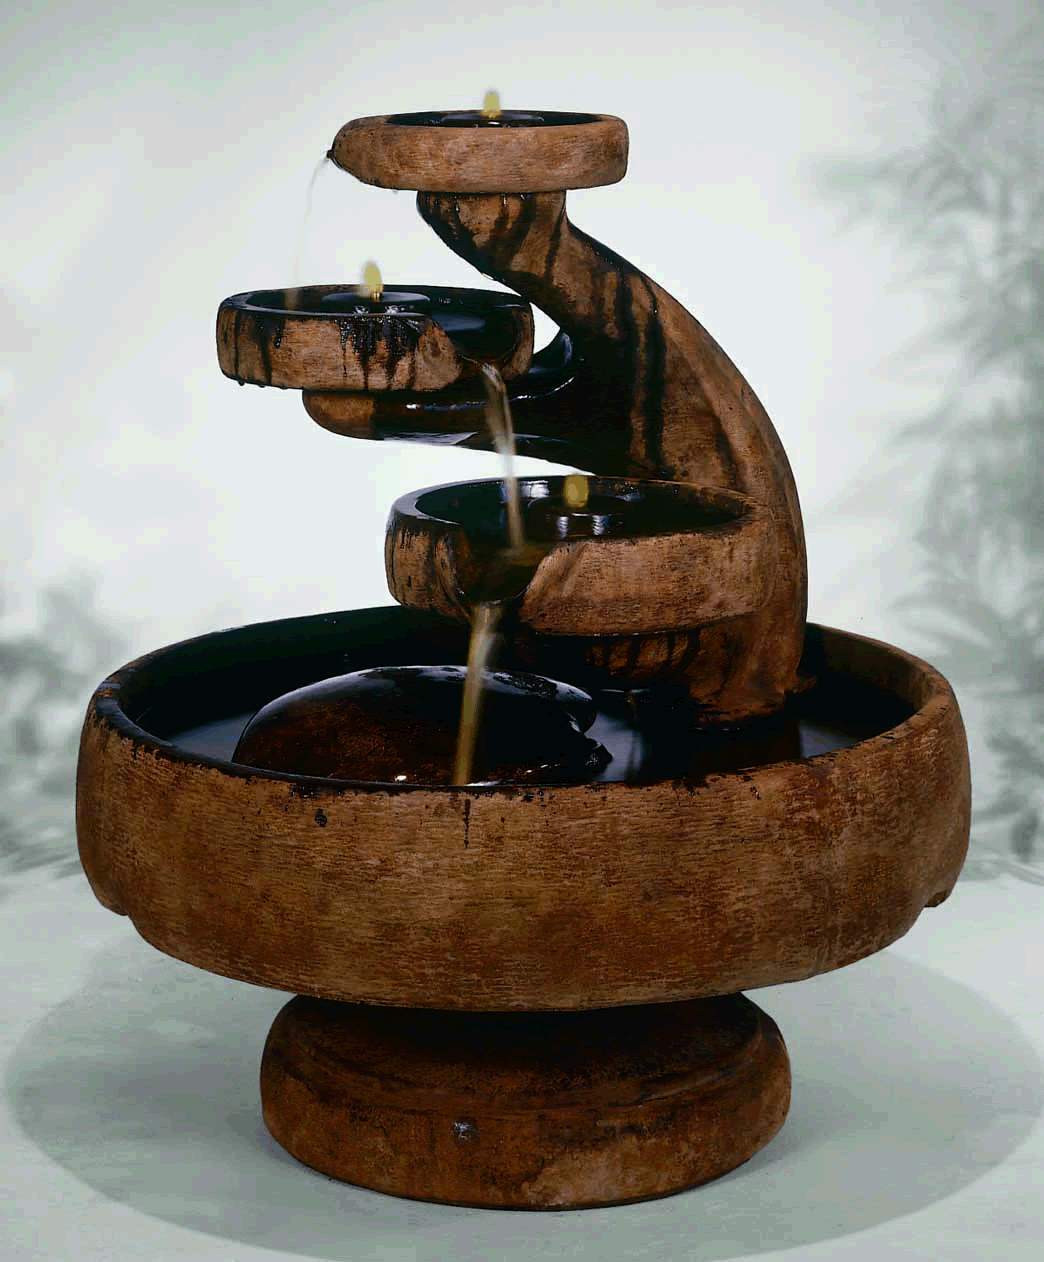 Artistic Water Feature For Indoor With Pool Layers And Fountains